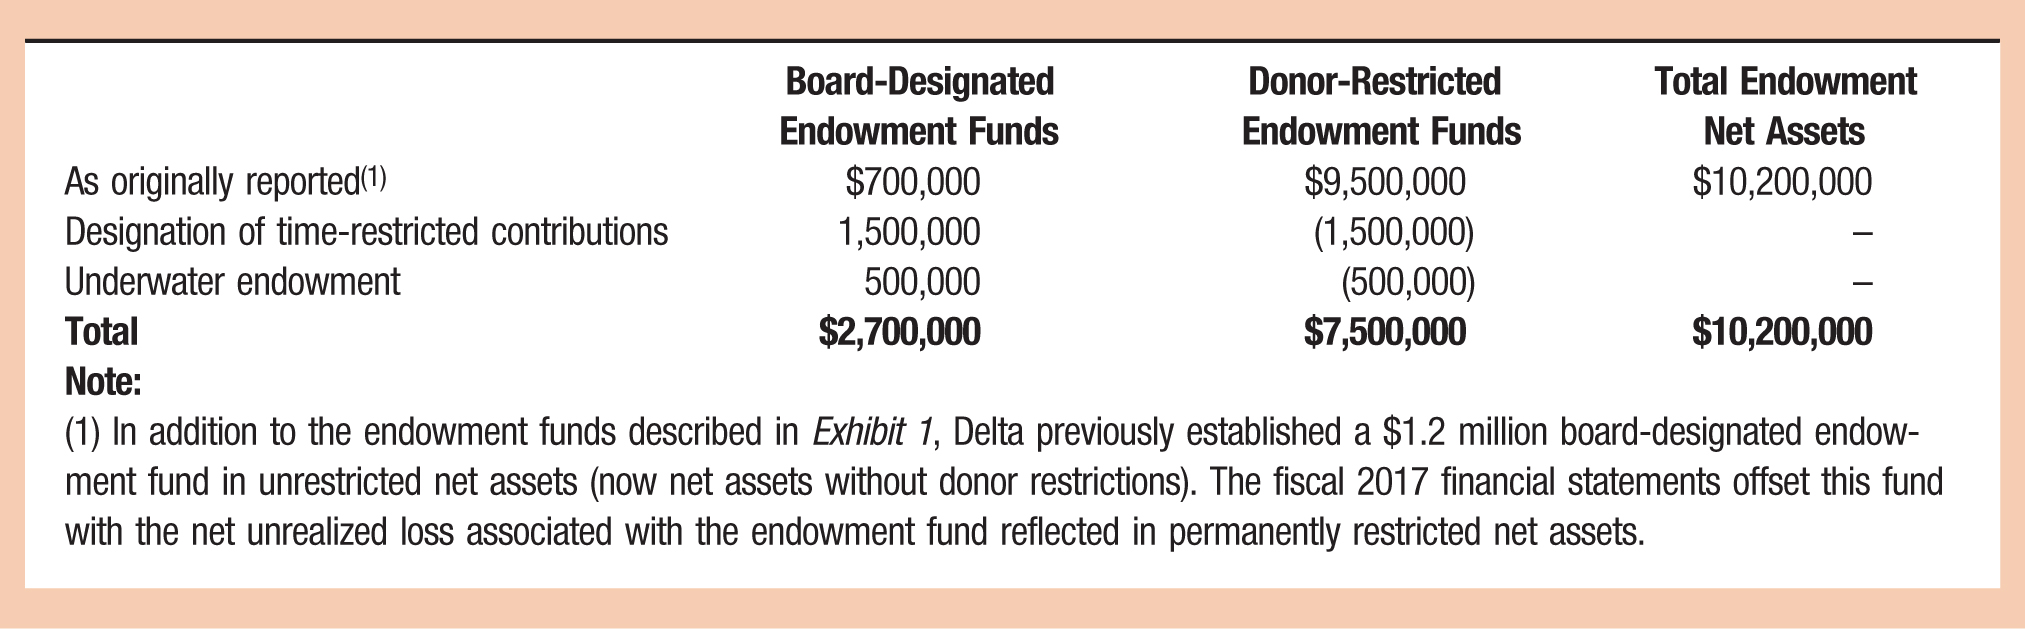 Board-Designated Endowment Funds; Donor-Restricted Endowment Funds; Total Endowment Net Assets As originally reported(1); $700,000; $9,500,000; $10,200,000 Designation of time-restricted contributions; 1,500,000; (1,500,000); – Underwater endowment; 500,000; (500,000); – Total; $2,700,000; $7,500,000; $10,200,000 Note: (1) In addition to the endowment funds described in Exhibit 1, Delta previously established a $1.2 million board-designated endowment fund in unrestricted net assets (now net assets without donor restrictions). The fiscal 2017 financial statements offset this fund with the net unrealized loss associated with the endowment fund reflected in permanently restricted net assets.